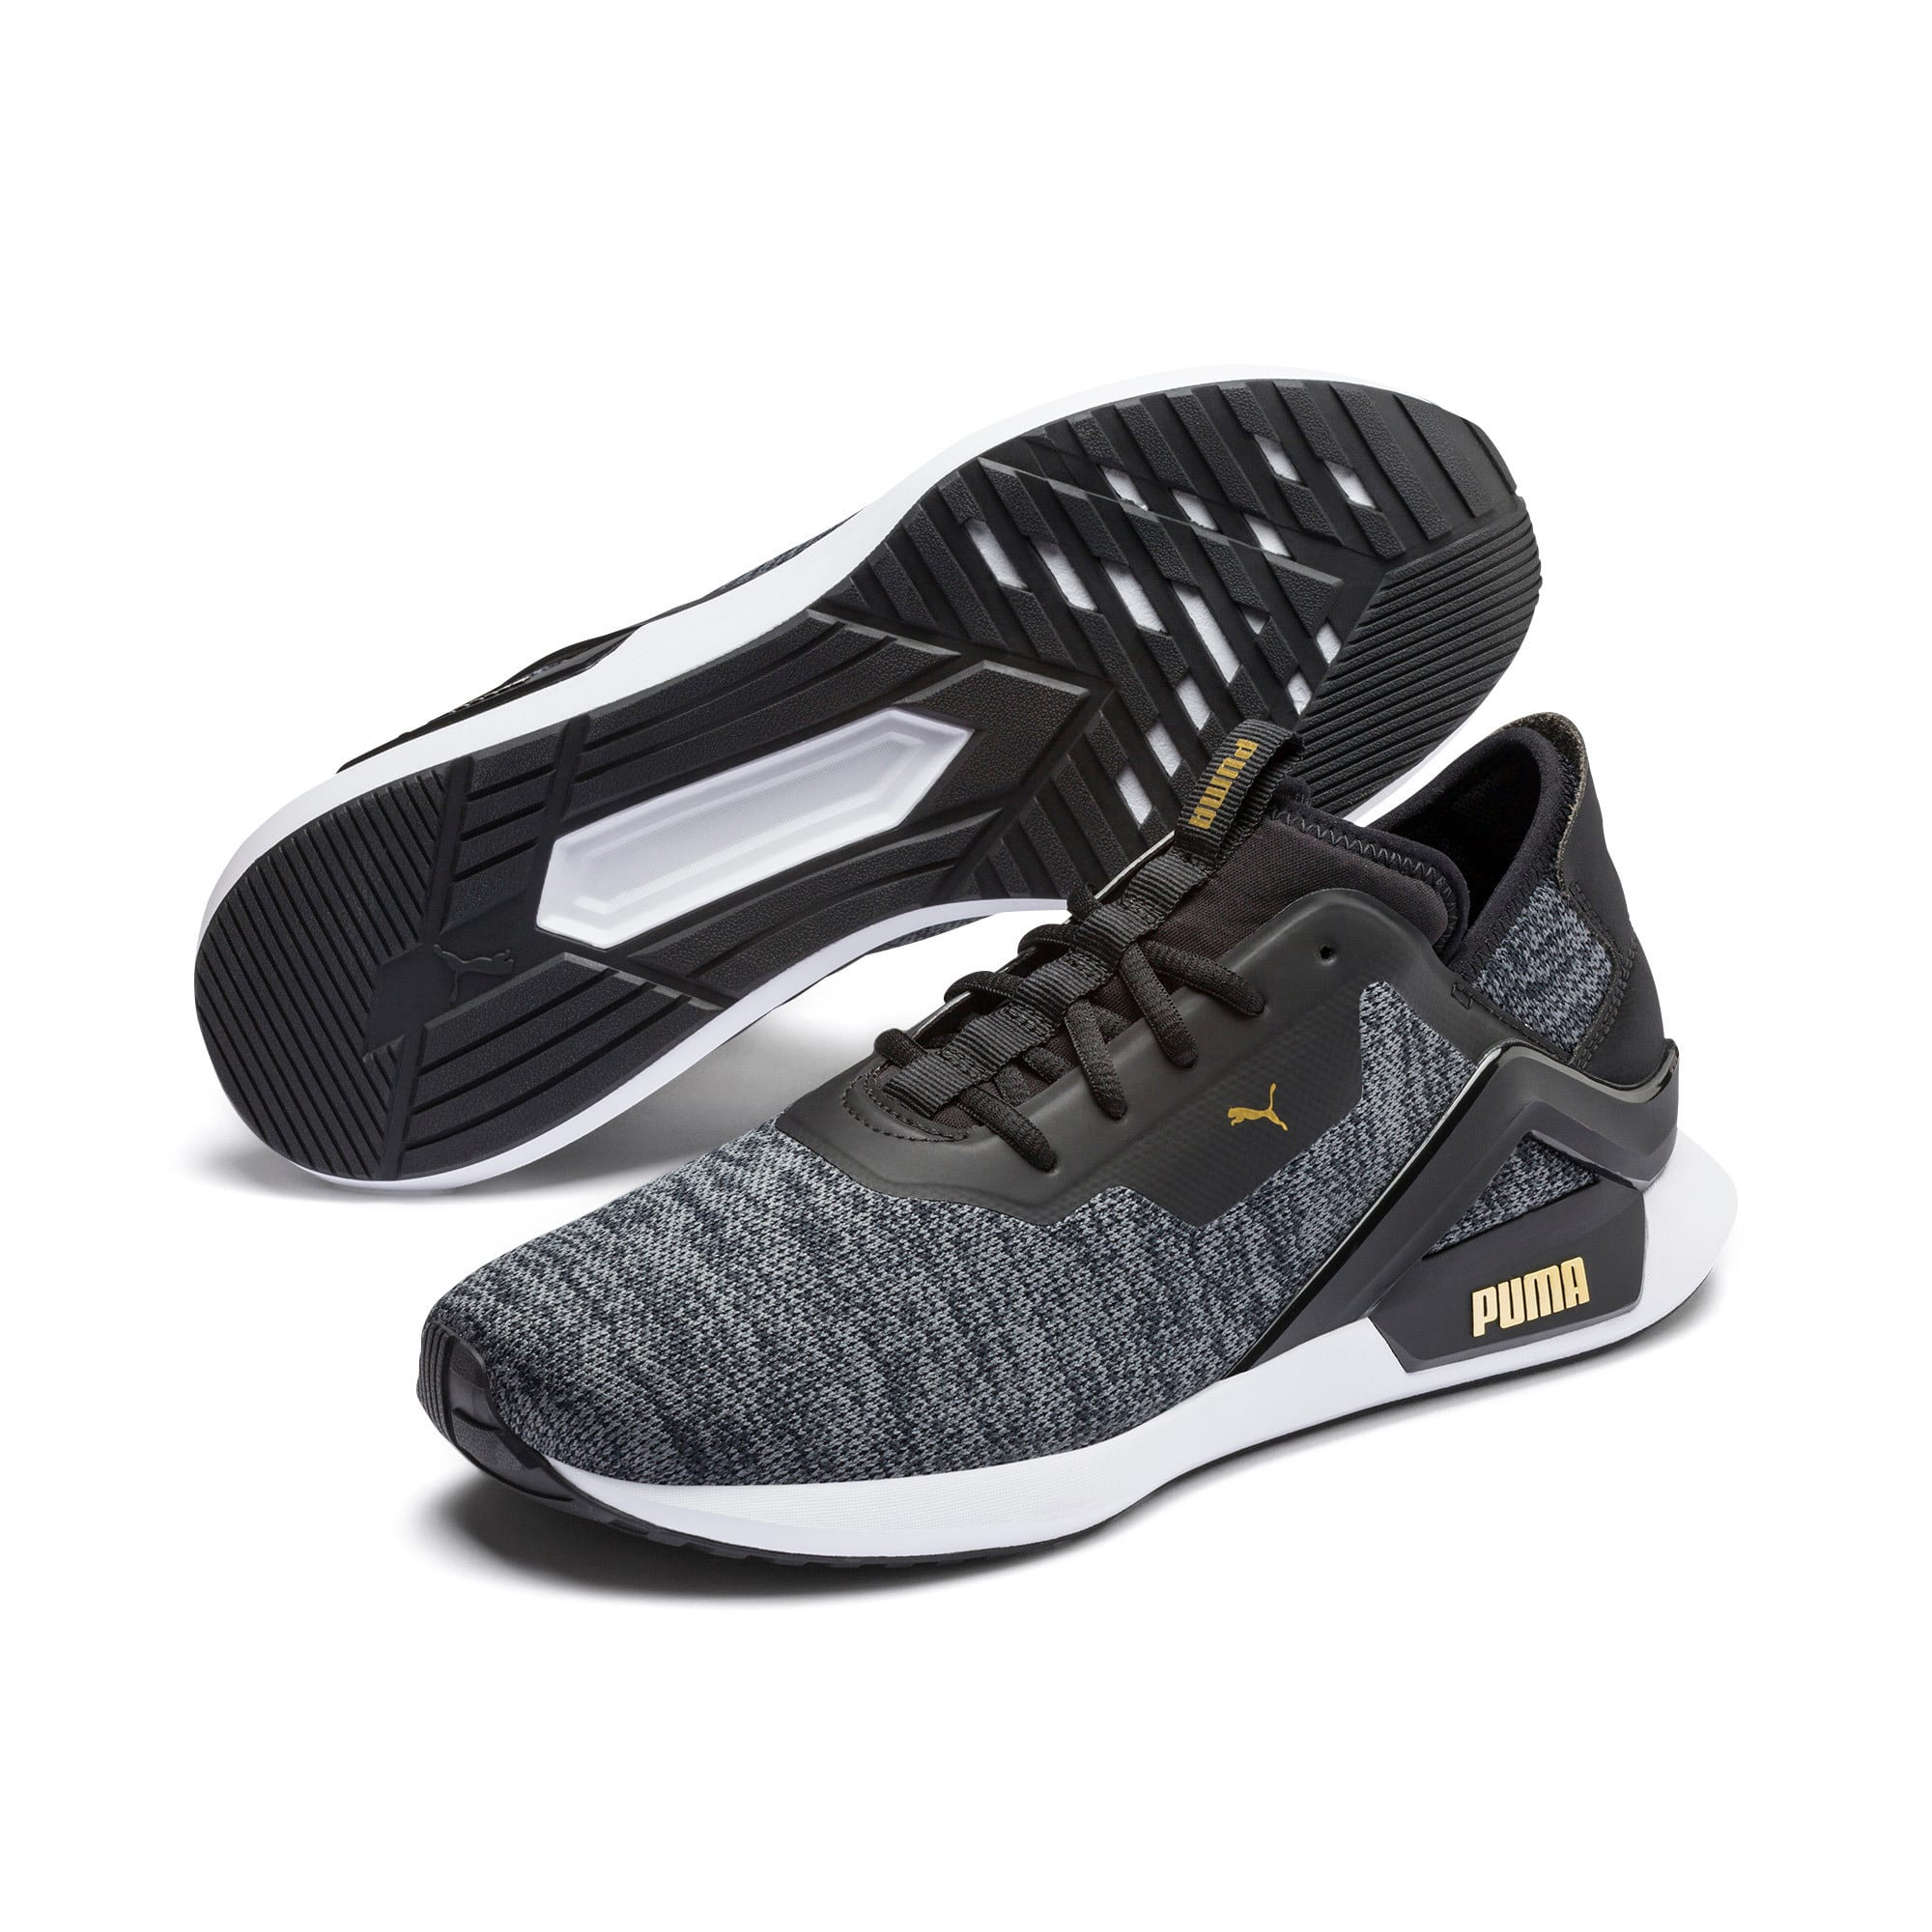 Thumbnail 3 of Rogue X Knit Men's Trainers, Black-CASTLEROCK-Gold, medium